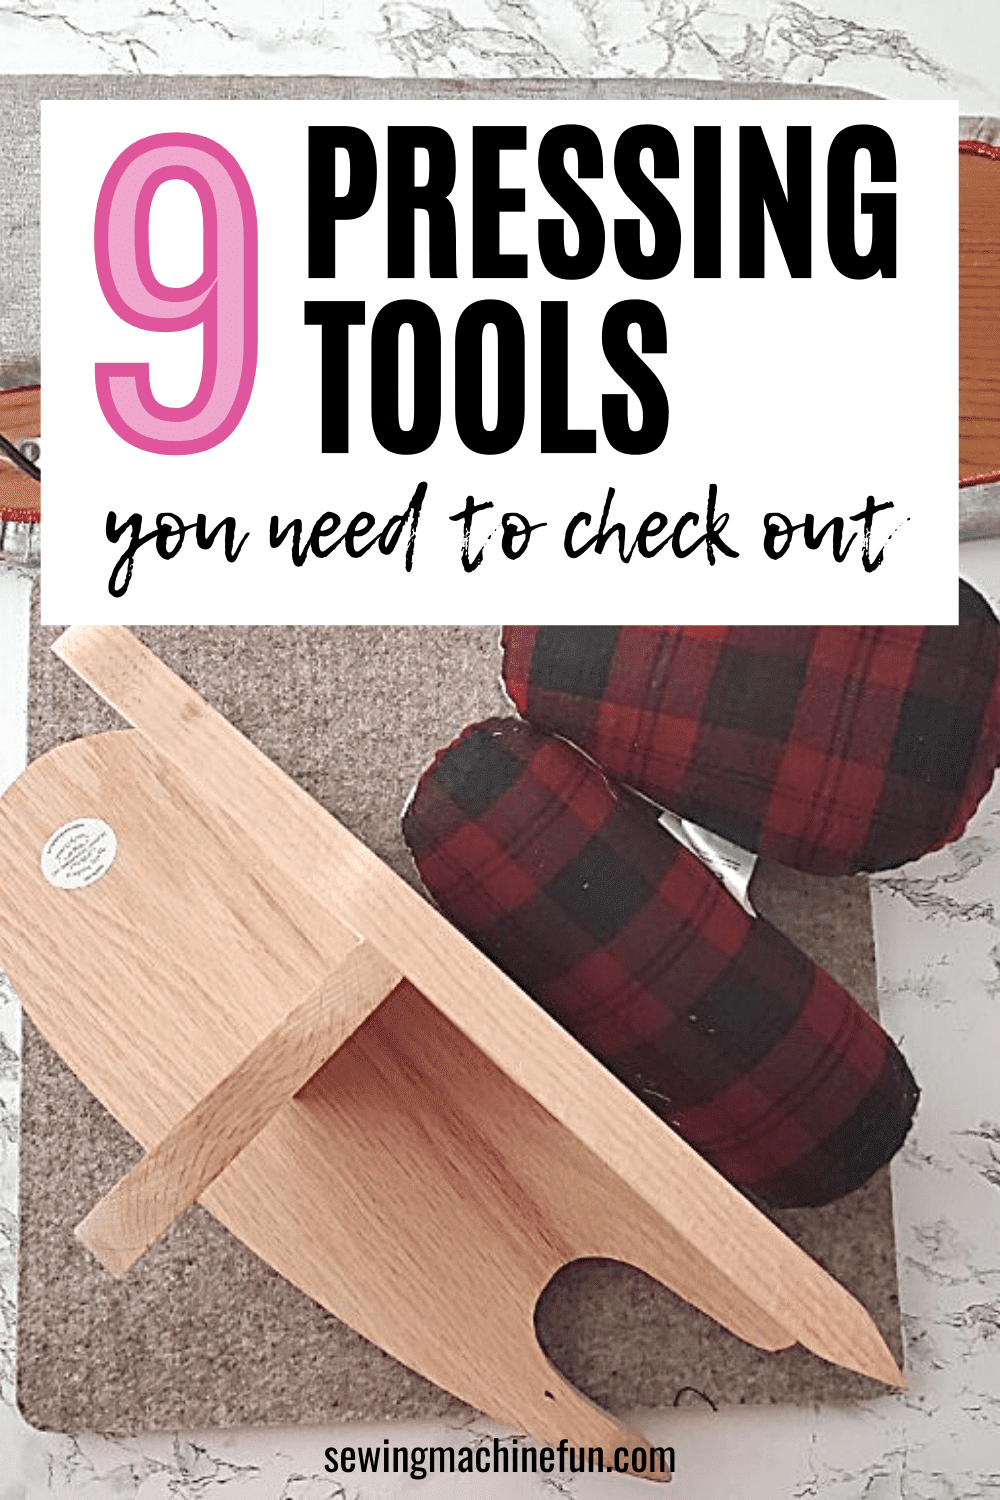 types of pressing tools for sewing